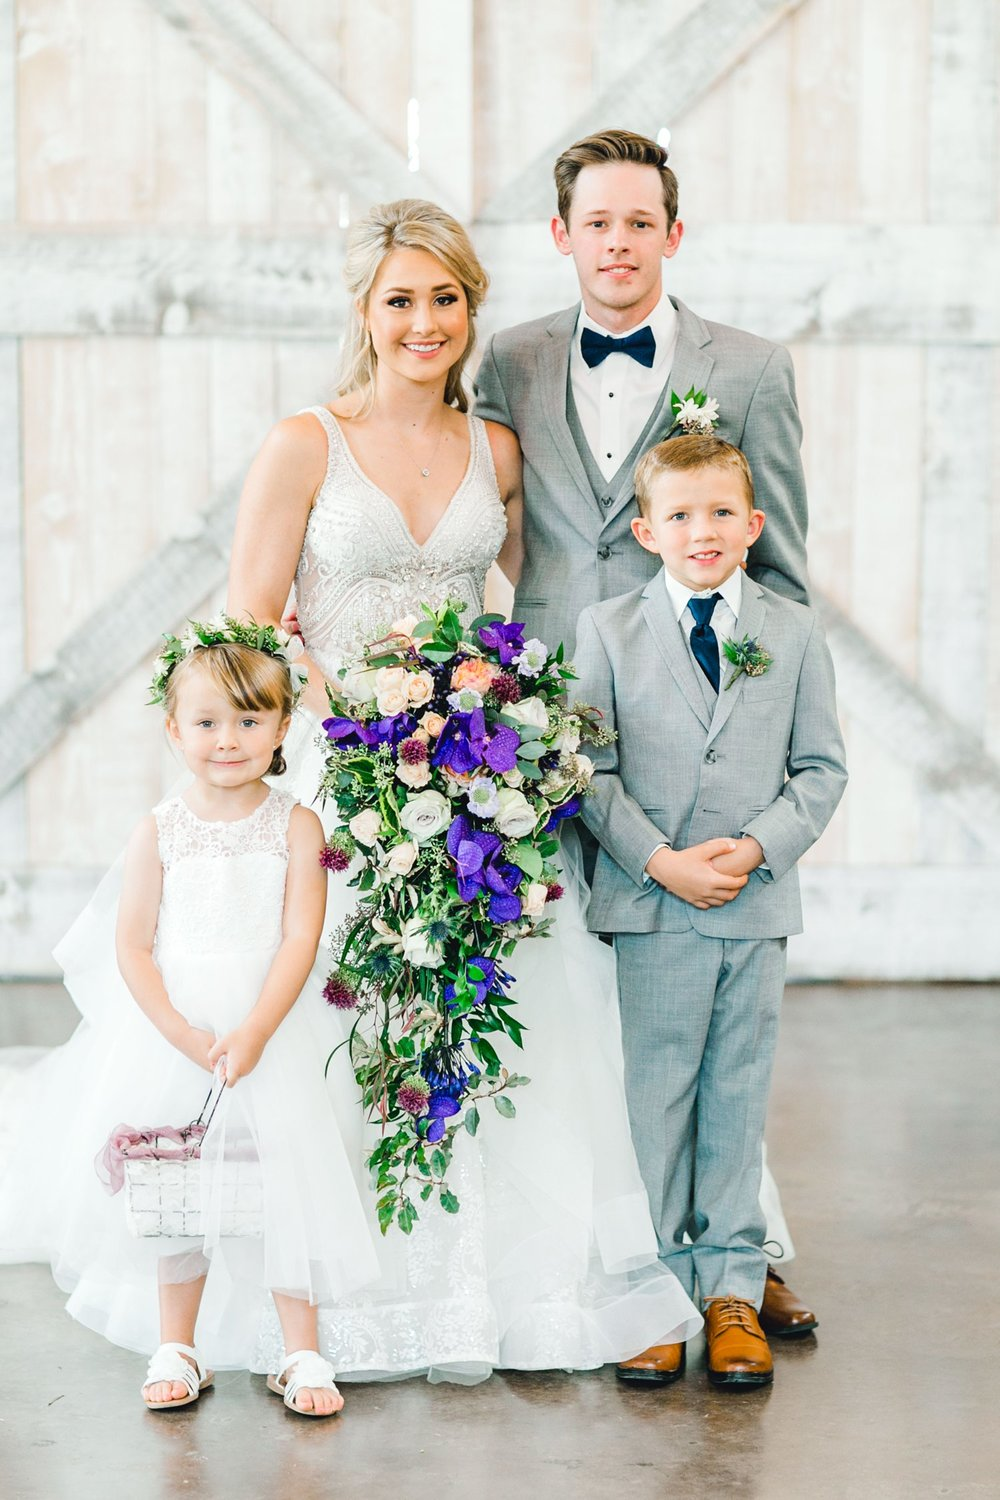 KAITLYN_AND_ZACHARY_HUNT_ALLEEJ_LUBBOCK_WEDDING_PHOTOGRAPHER_EBERLEY_BROOKS_EVENTS_0075.jpg